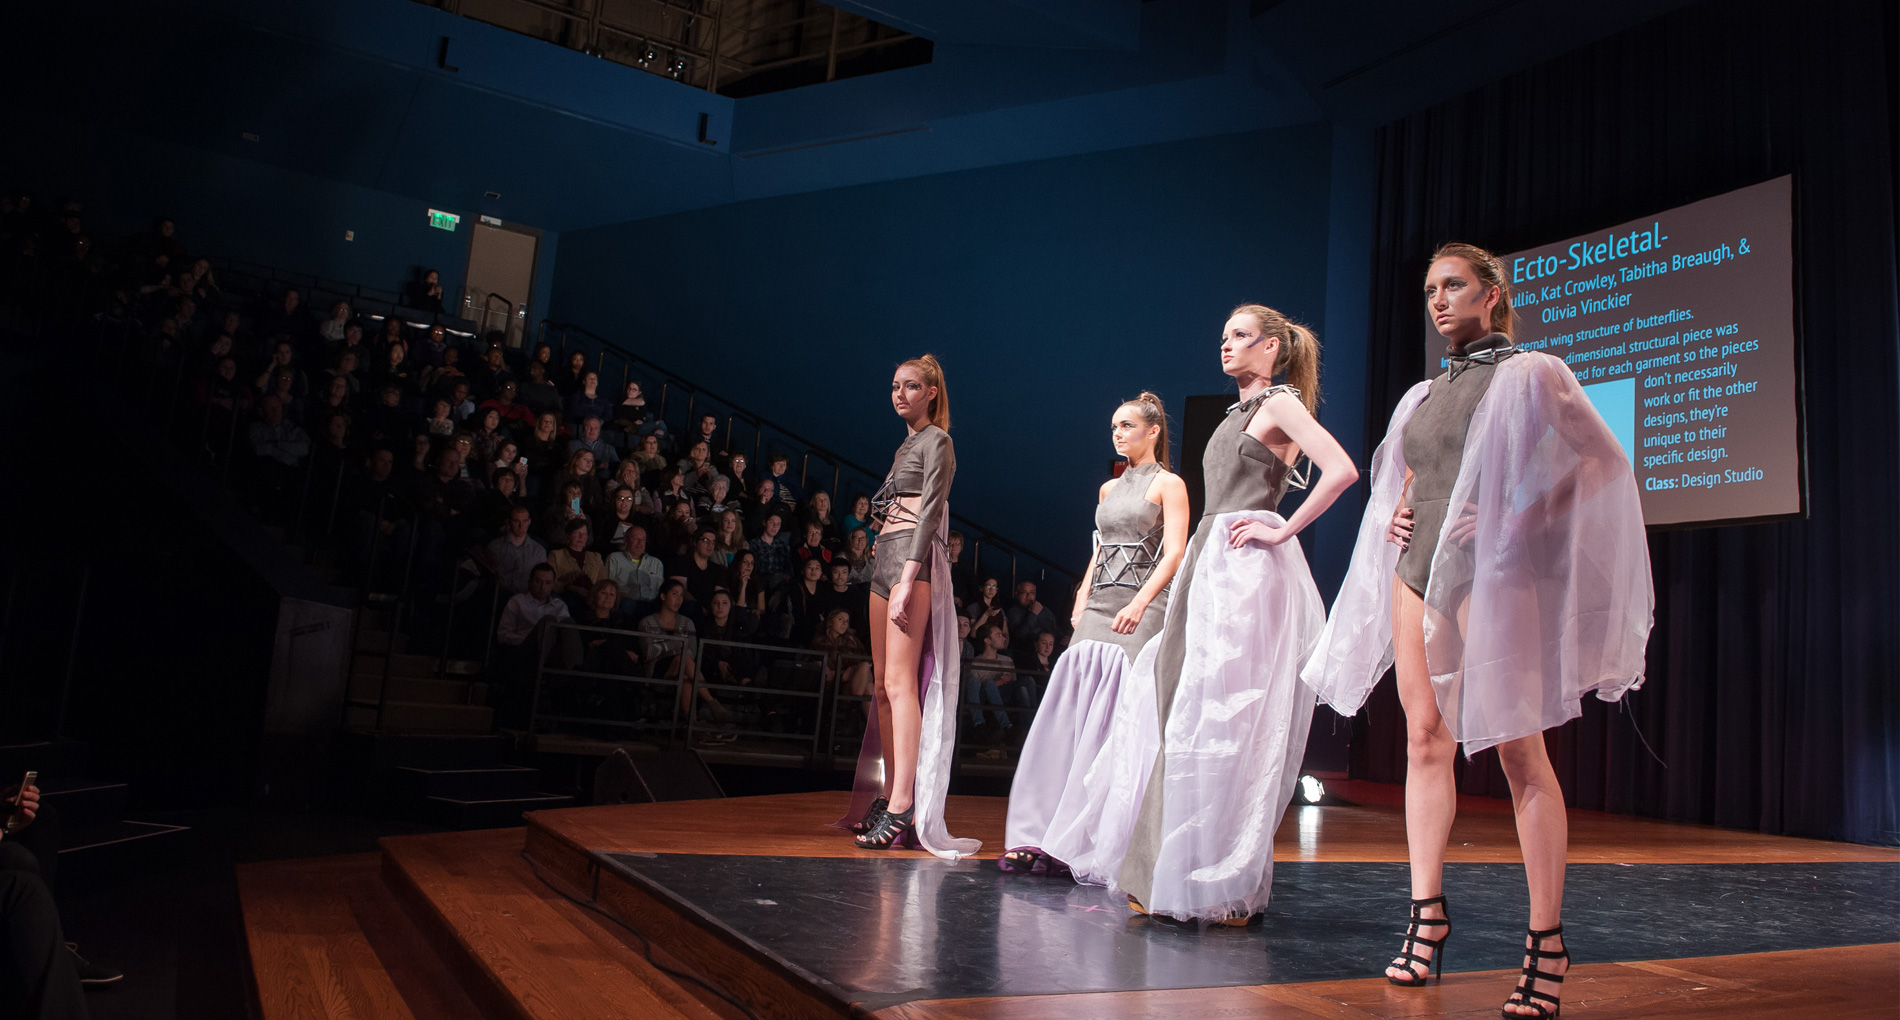 Winners of MSU Fashion Design Competition Receive Trip to NY Fashion Week